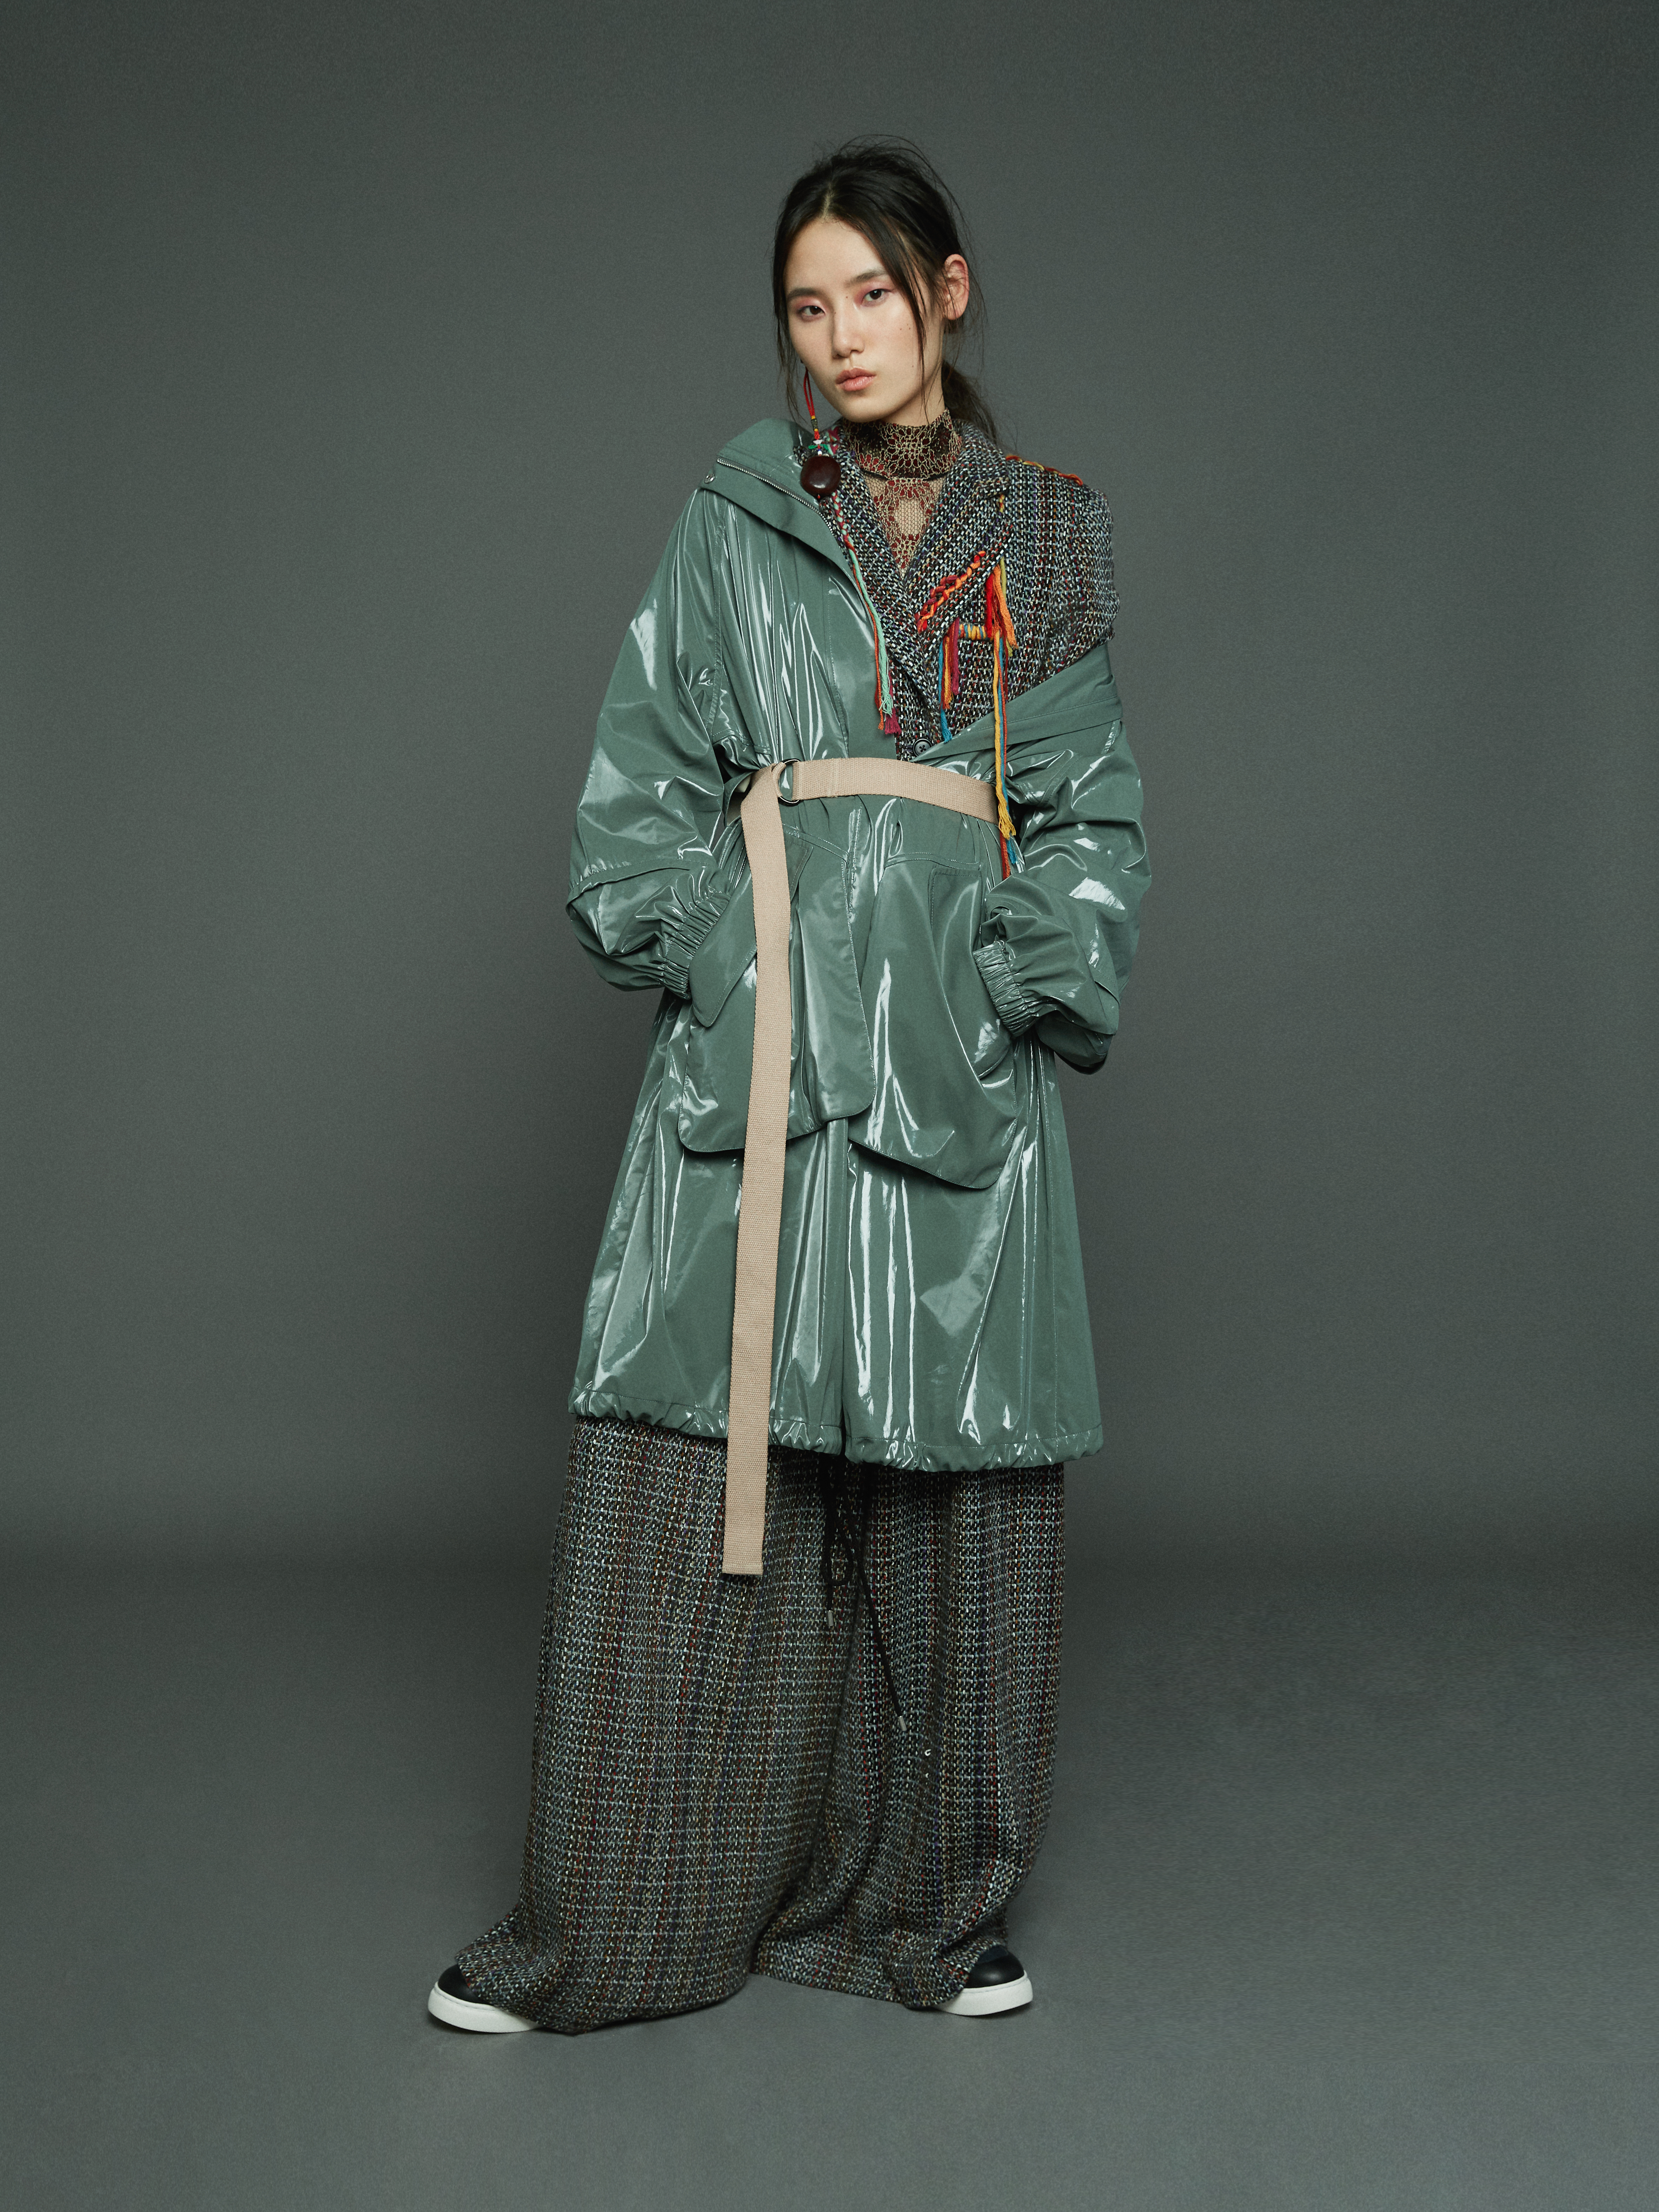 Vivienne Tam Fall/Winter 2018 Collection